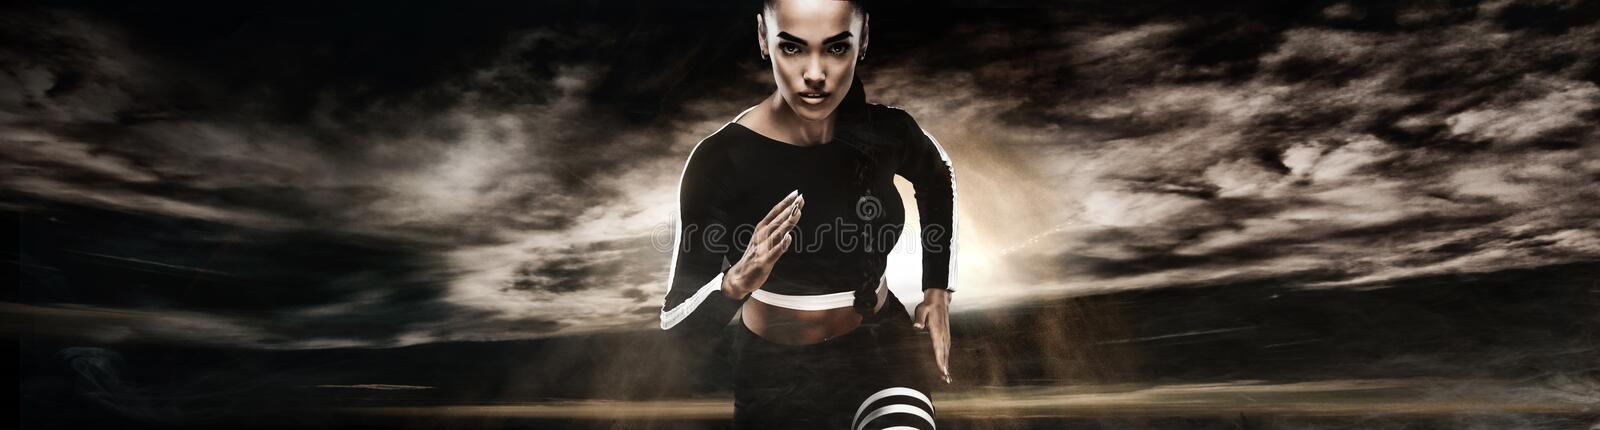 Strong athletic woman sprinter, running on dark background wearing in sportswear. Fitness and sport motivation. Runner royalty free stock photography